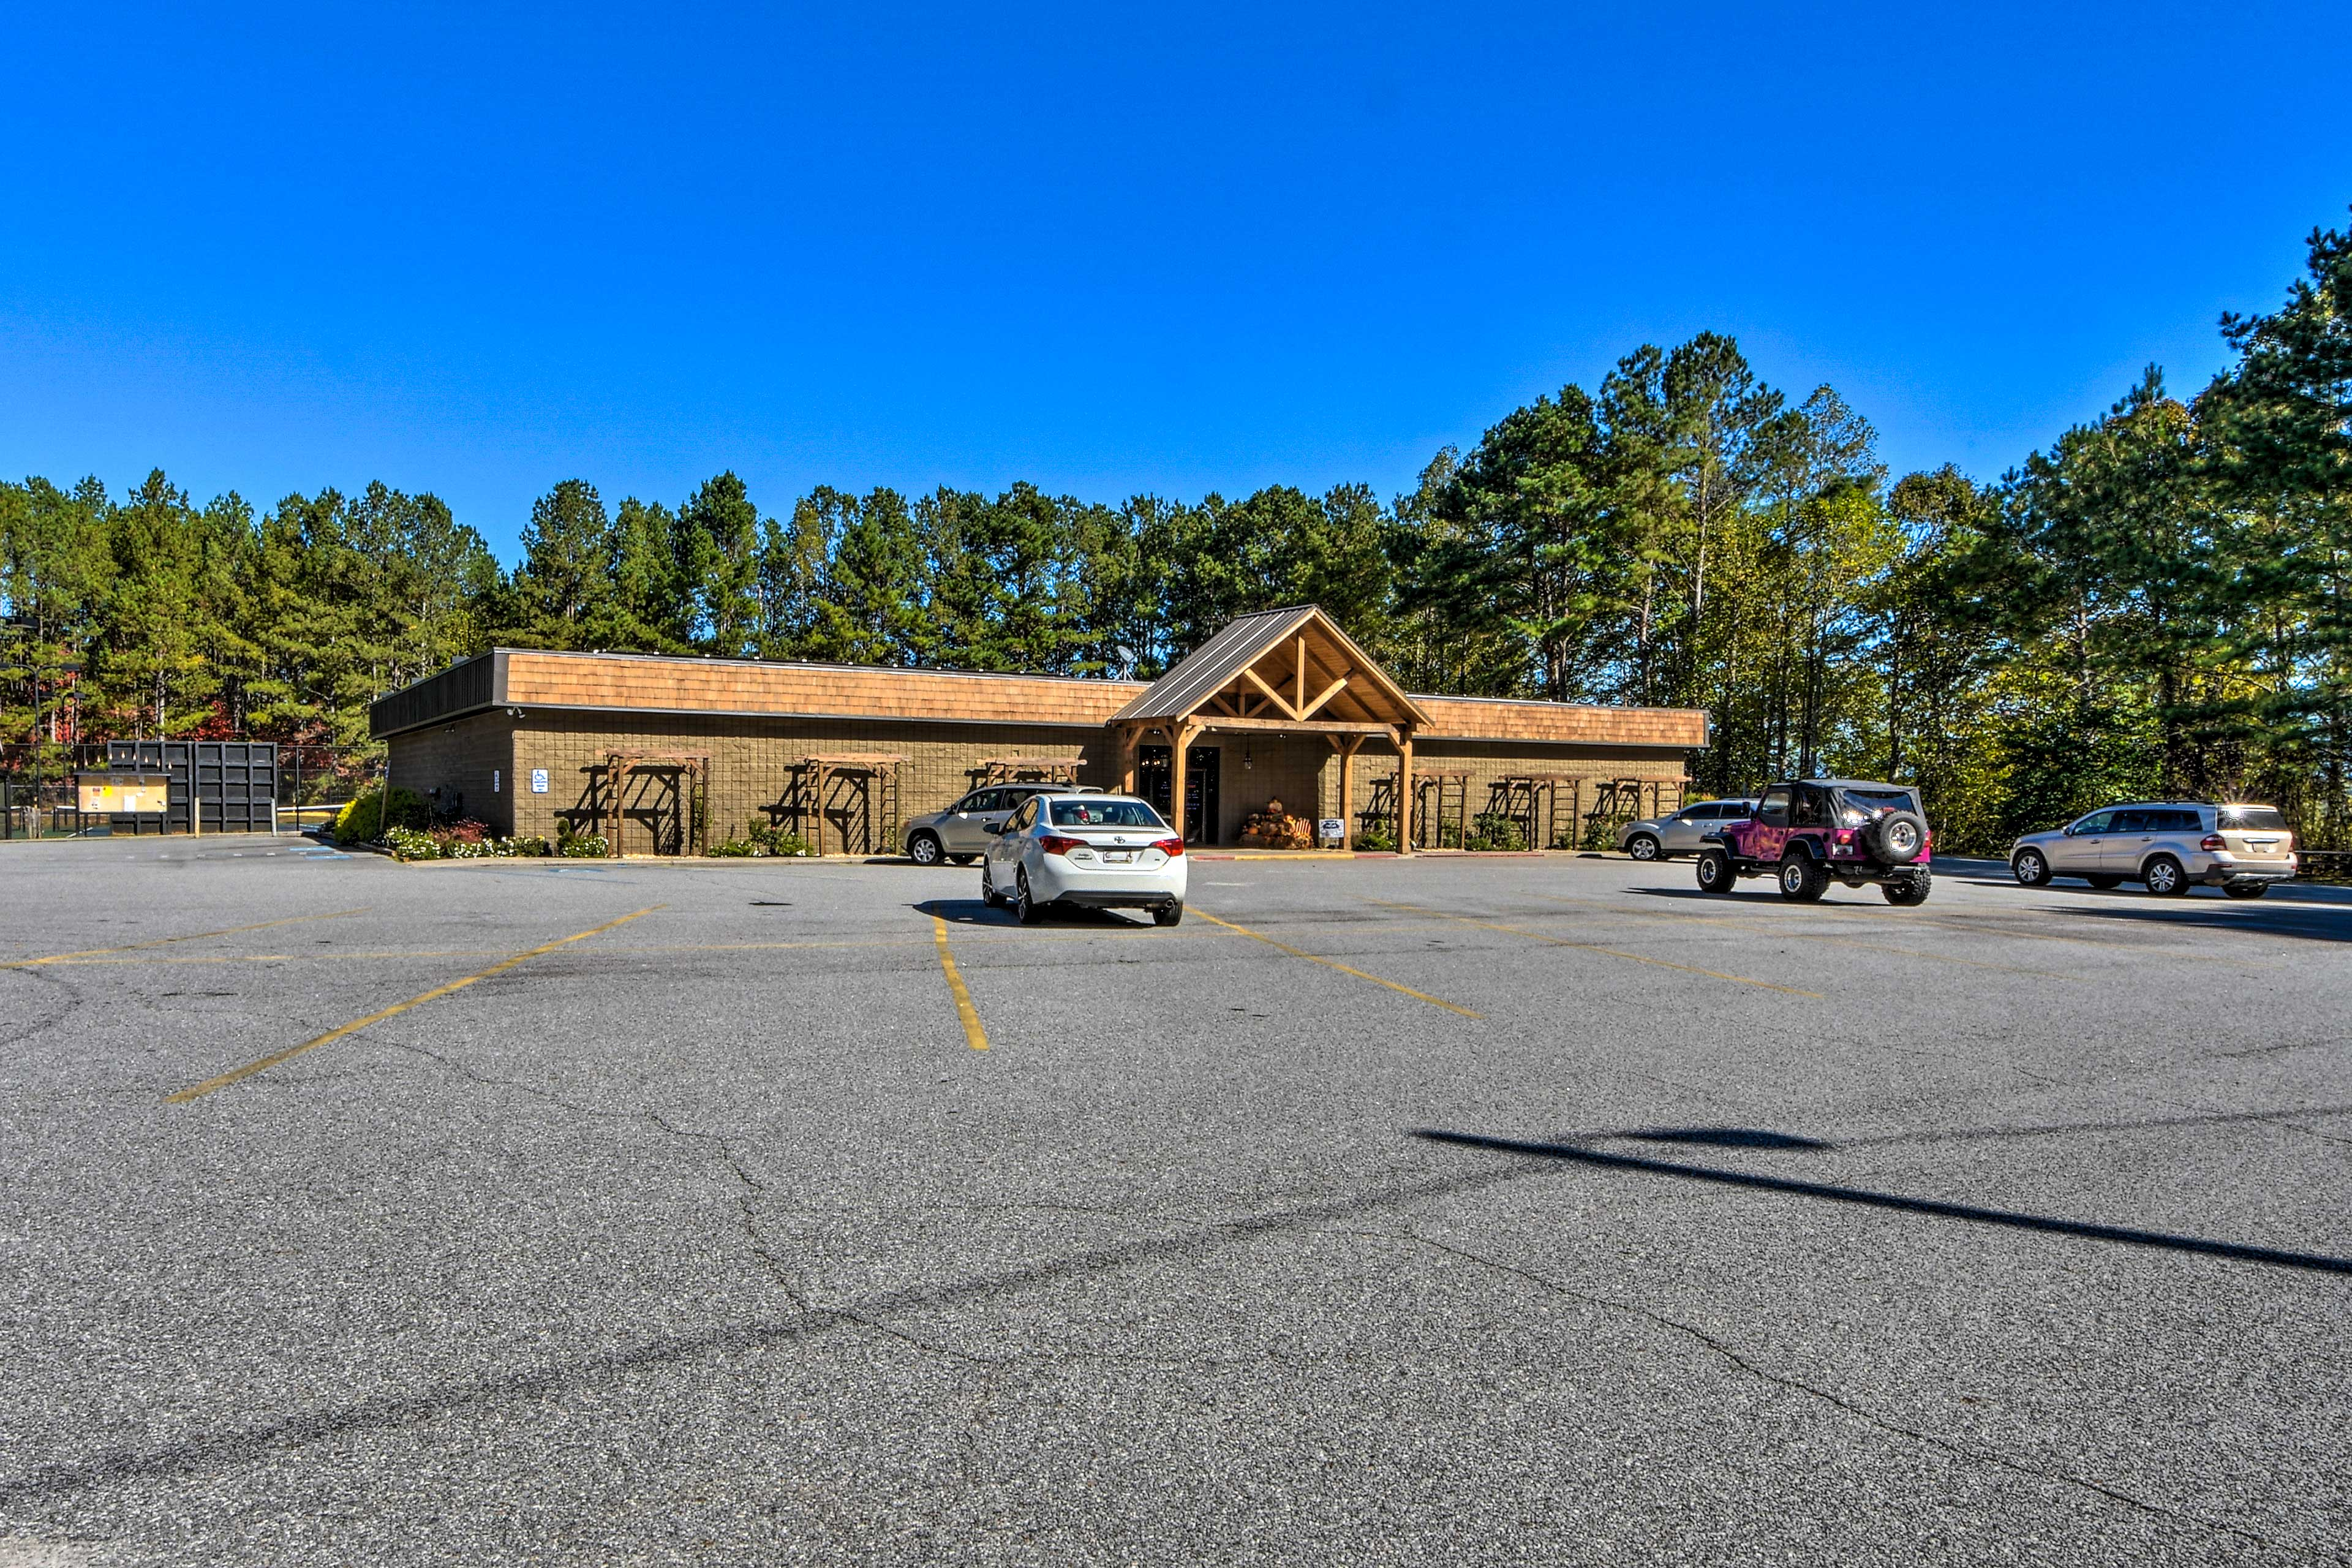 At Coosawattee River Resort, you'll have access to many community amenities.